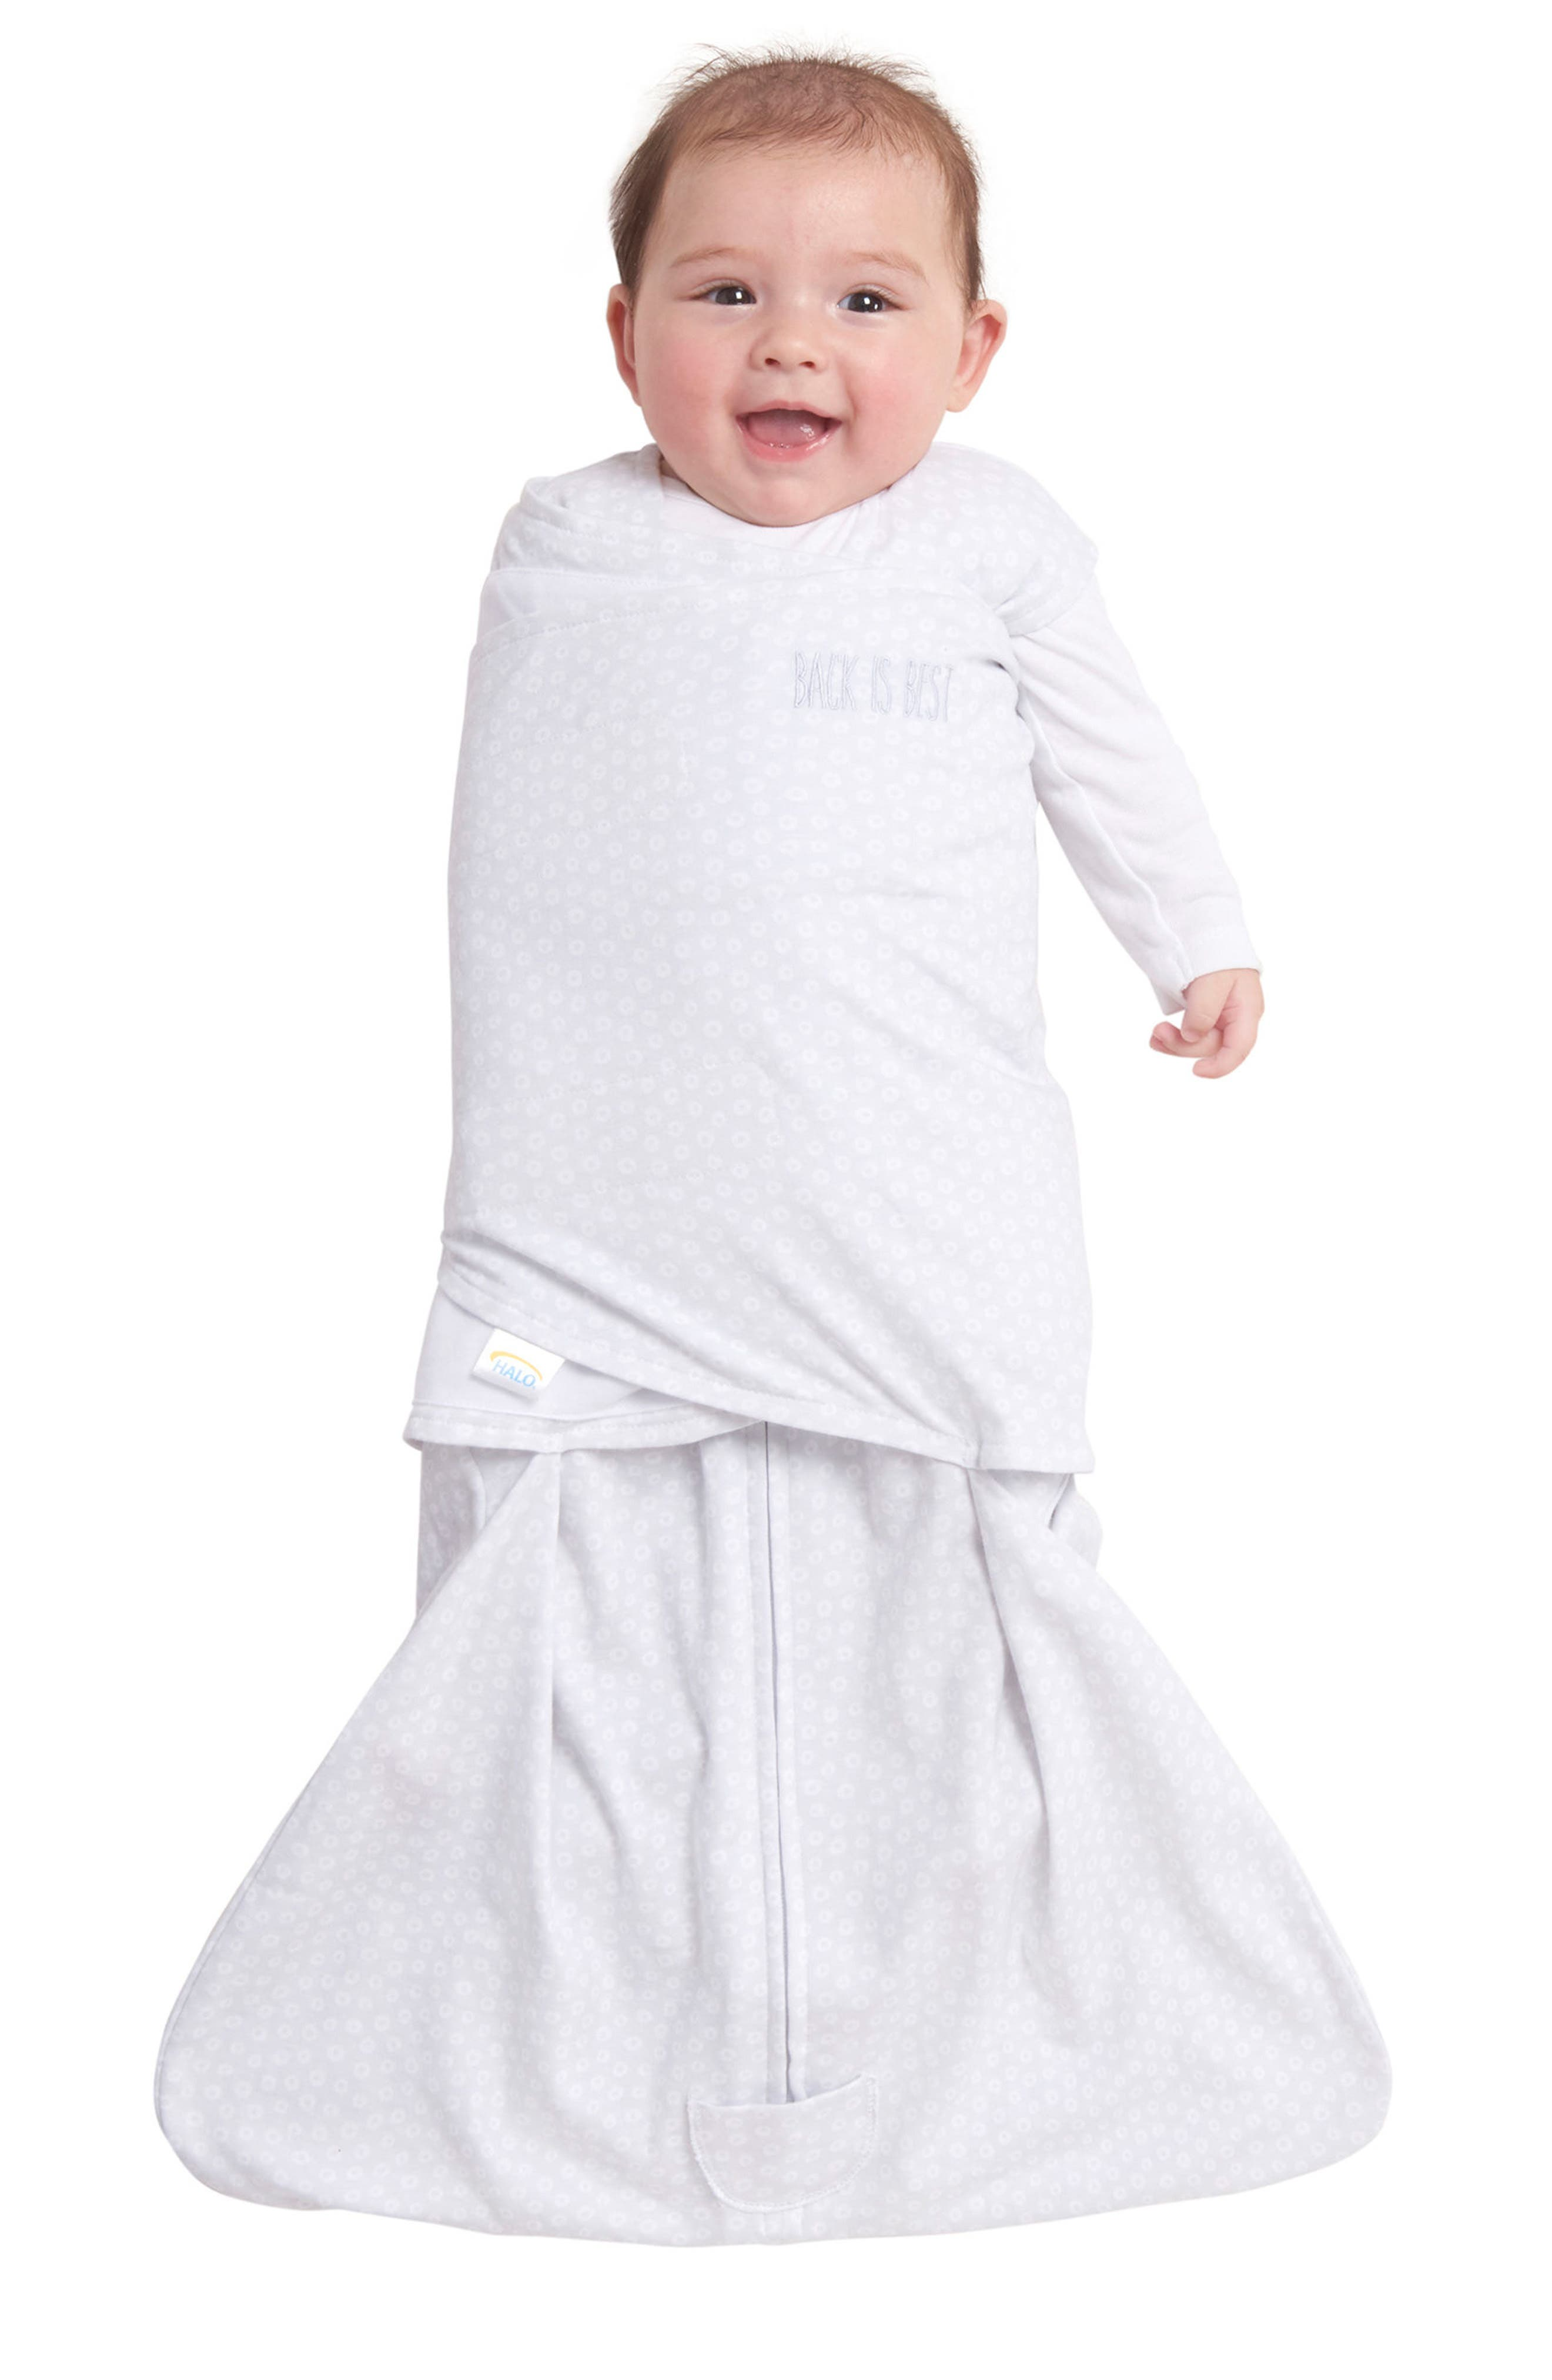 Platinum Series SleepSack<sup>™</sup> Swaddle & SleepSack<sup>™</sup> Set,                             Alternate thumbnail 8, color,                             GREY TINY CIRCLE AND LINES